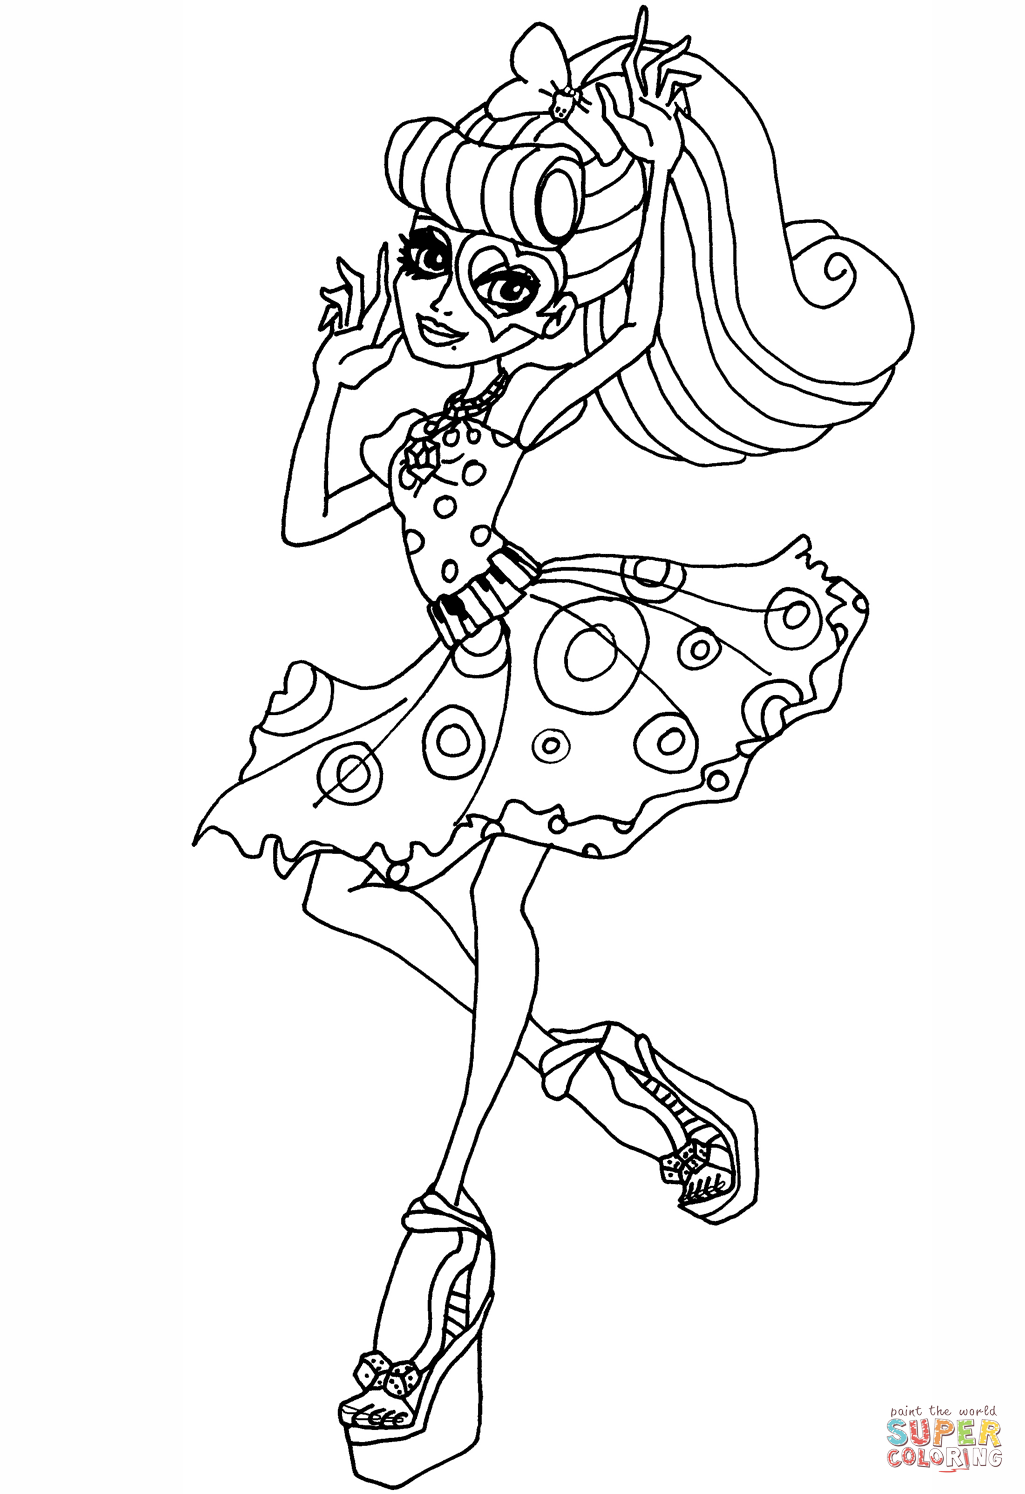 coloring pages monster high värityskuva free monster high coloring pages to print for kids värityskuva high monster coloring pages